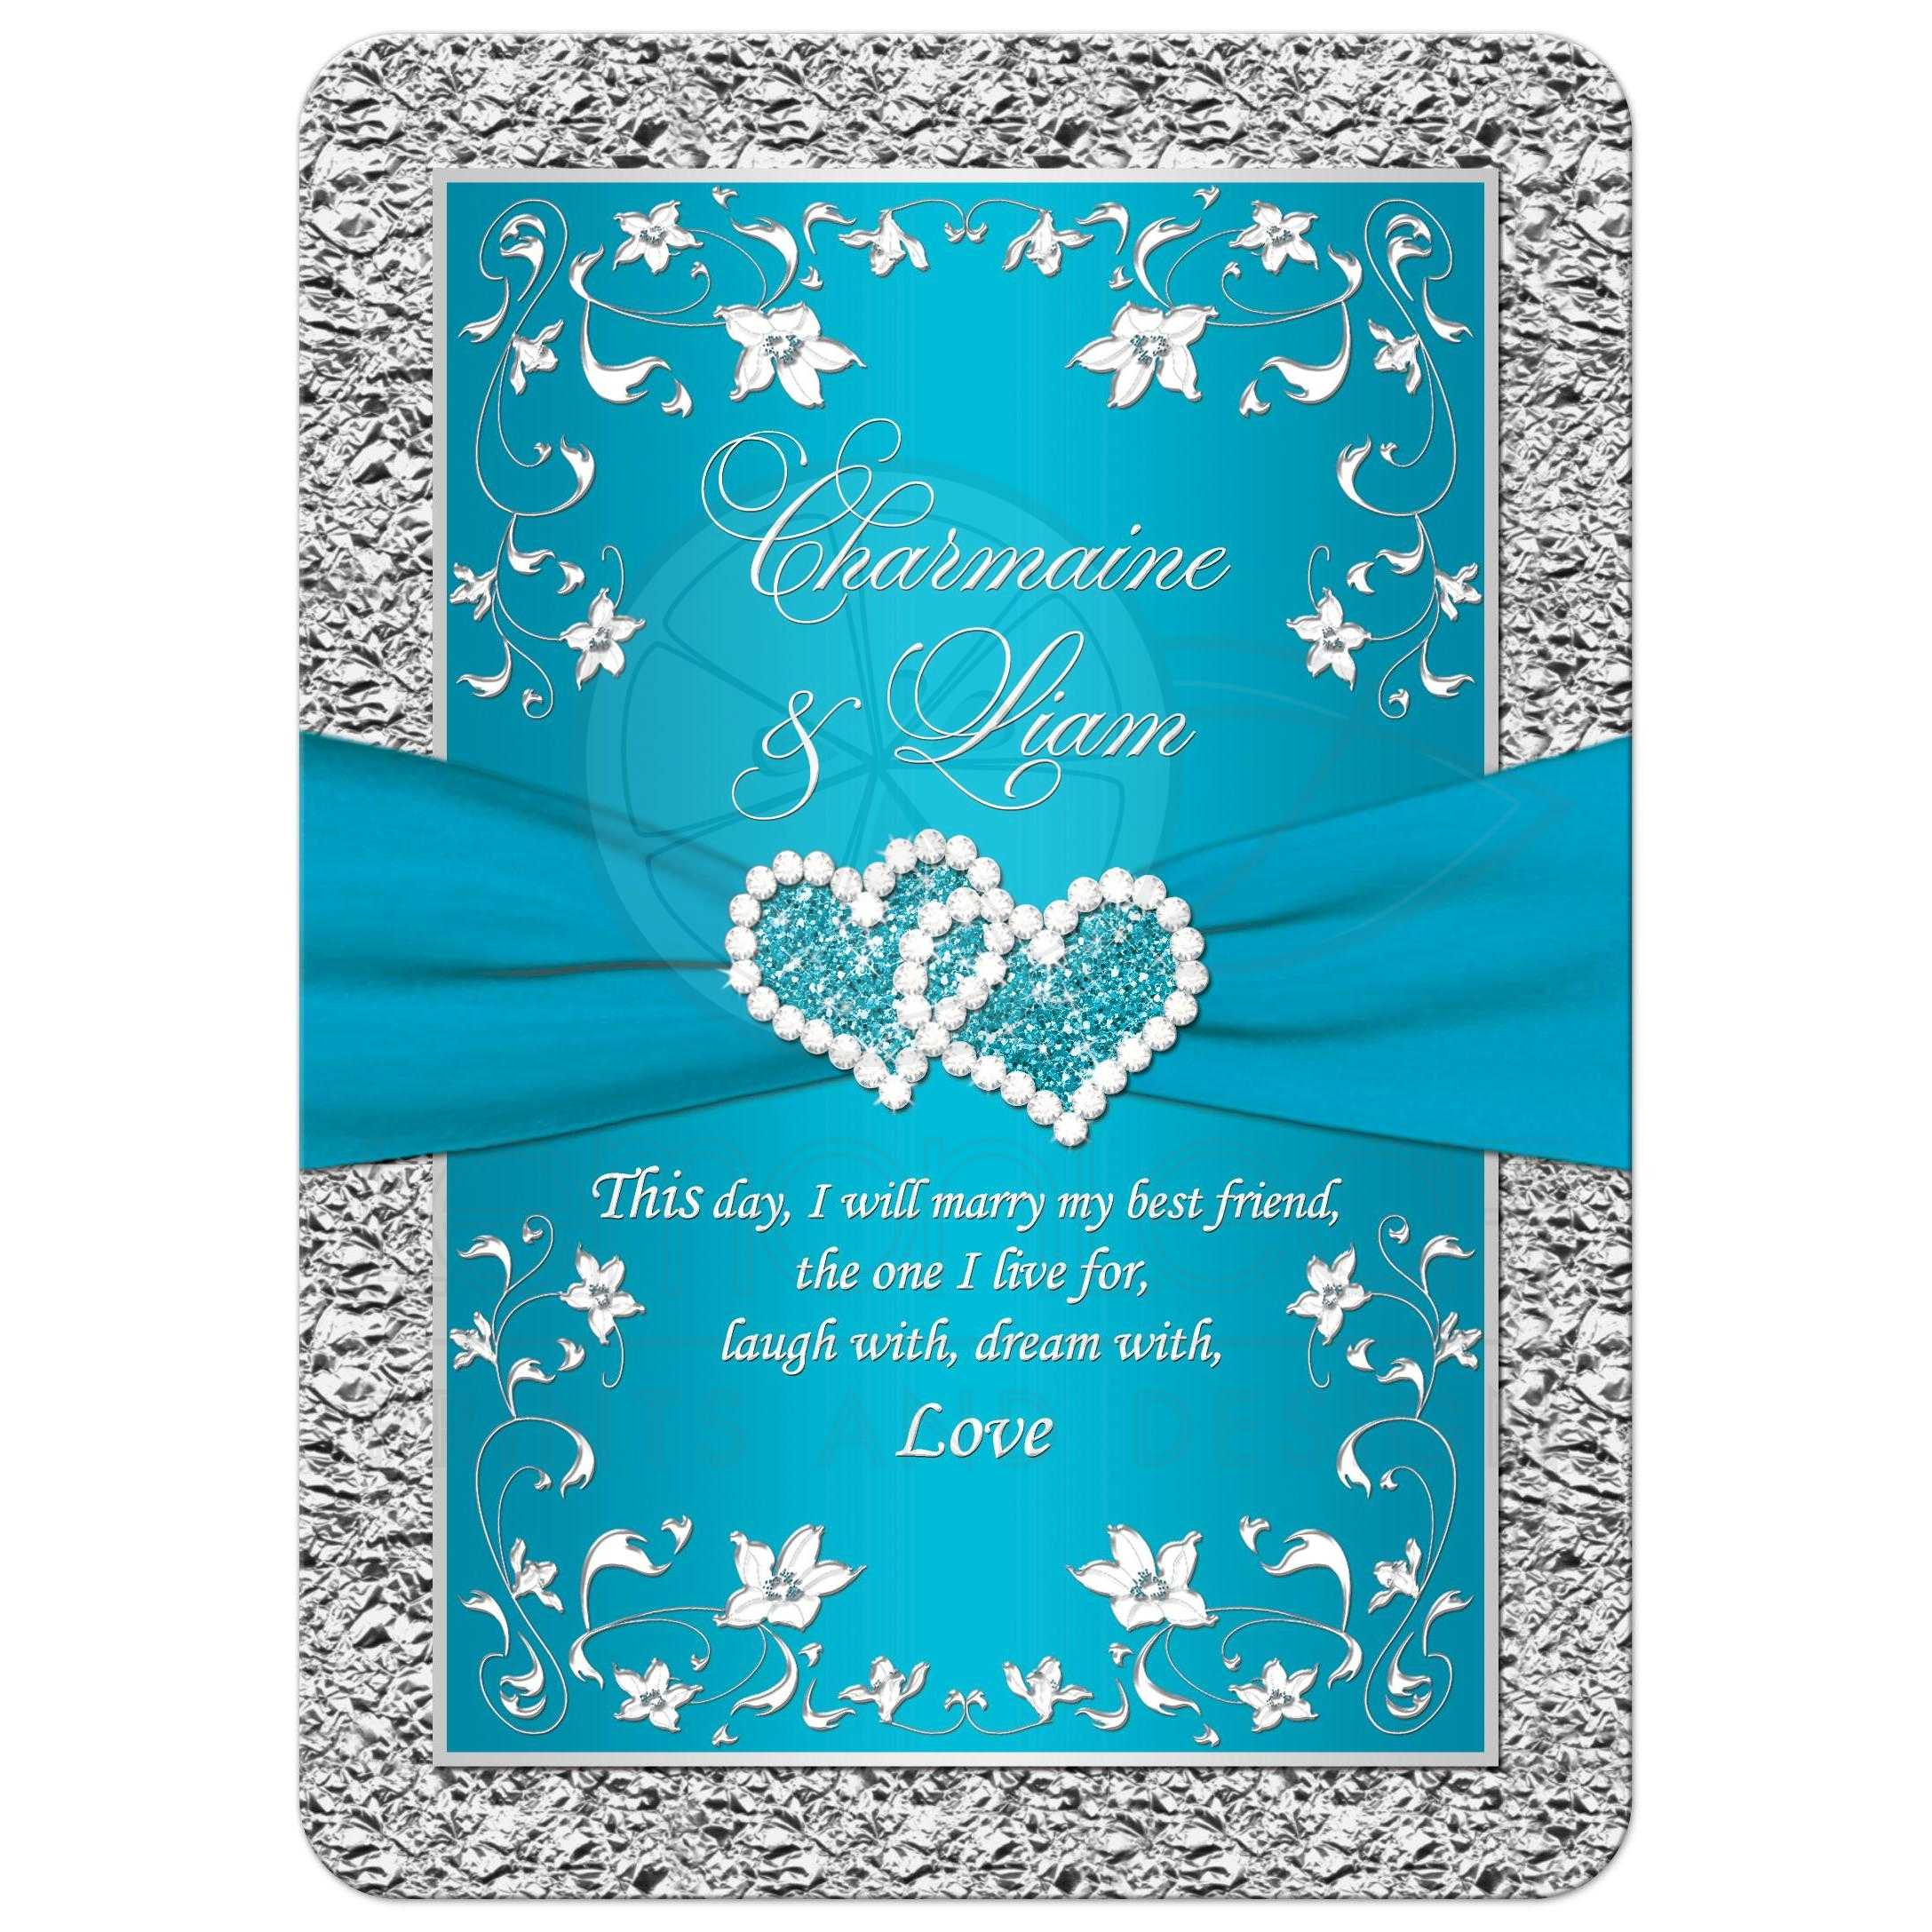 Wedding Invitations Turquoise: Turquoise, Silver Floral